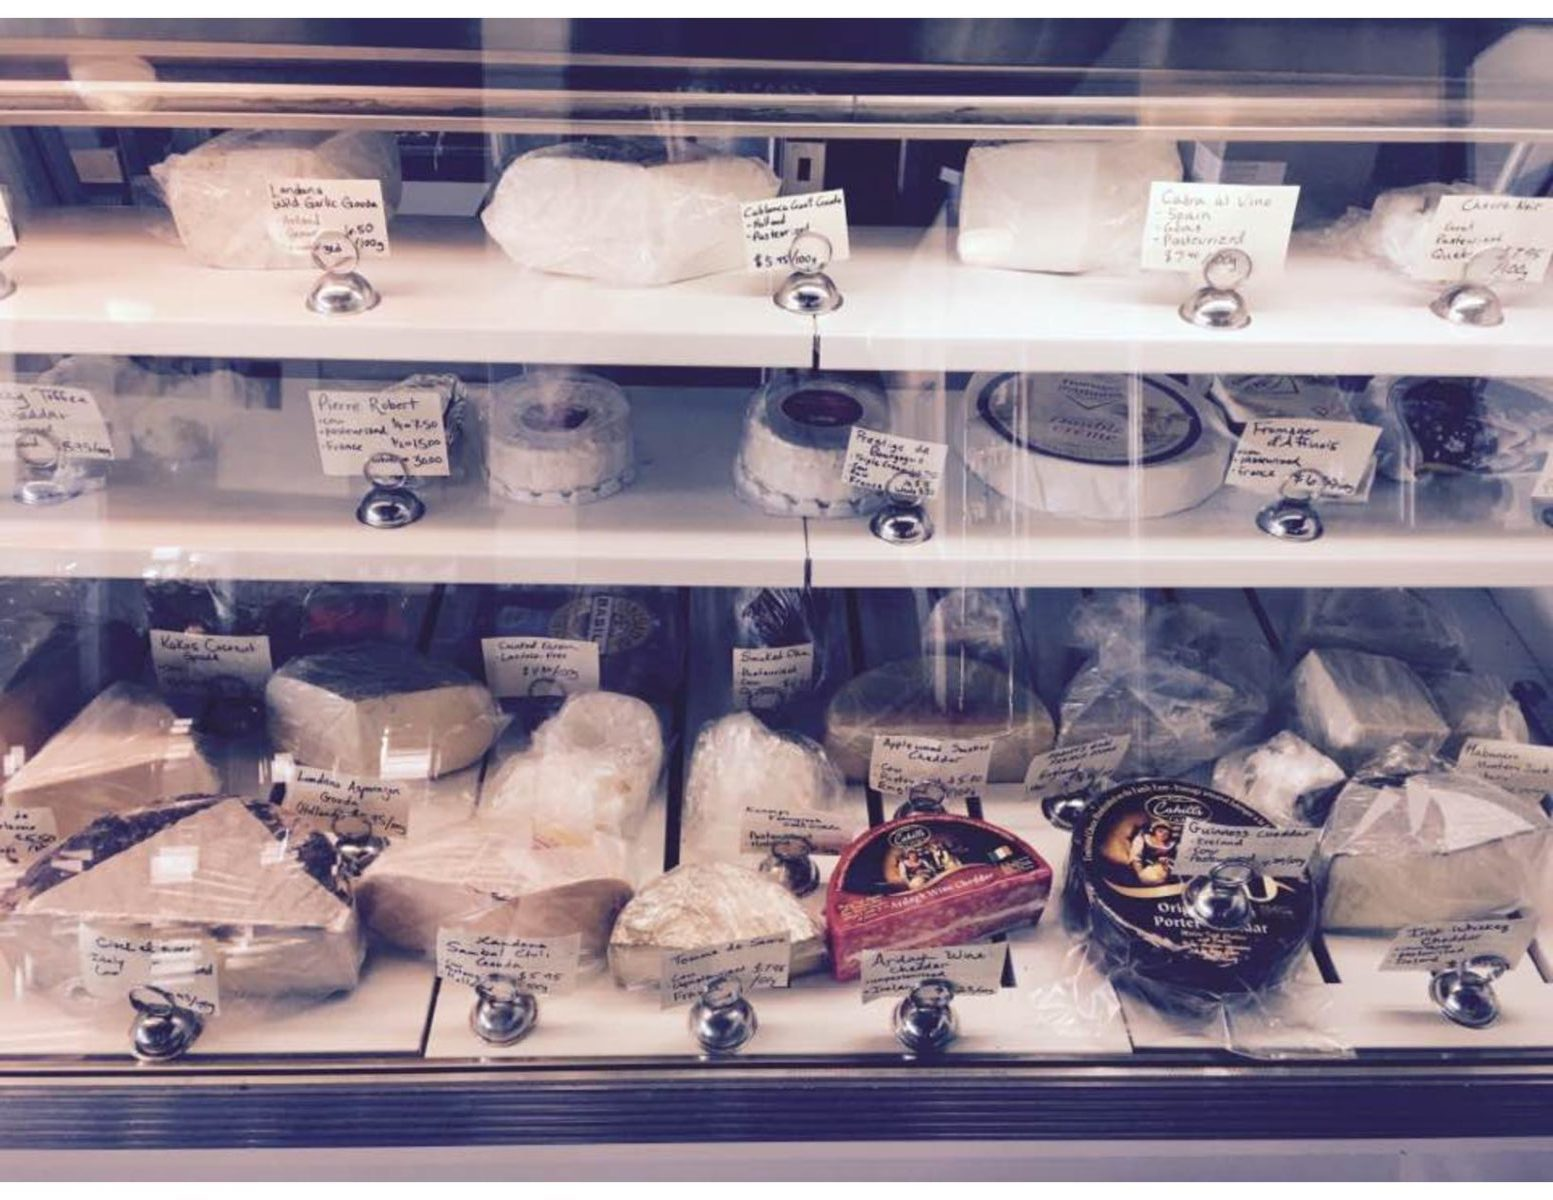 FROMAGERIE ELGIN: IT'S MORE THAN JUST CHEESE!